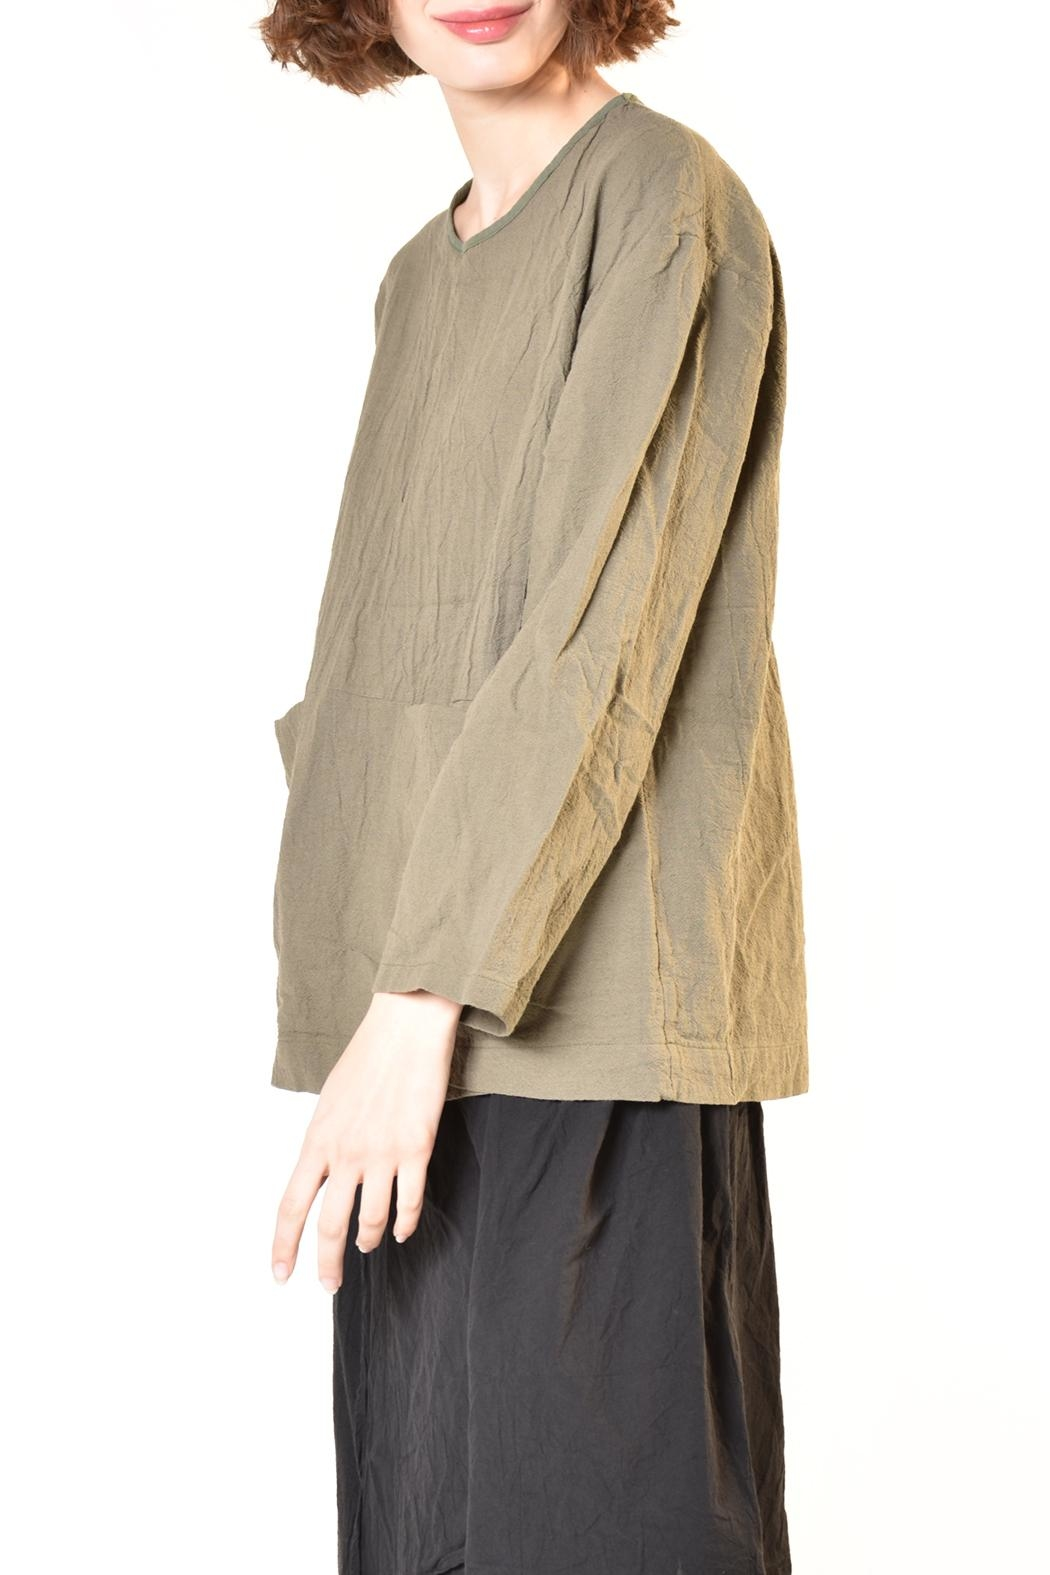 UZI NYC Pouch Blouse - Front Cropped Image